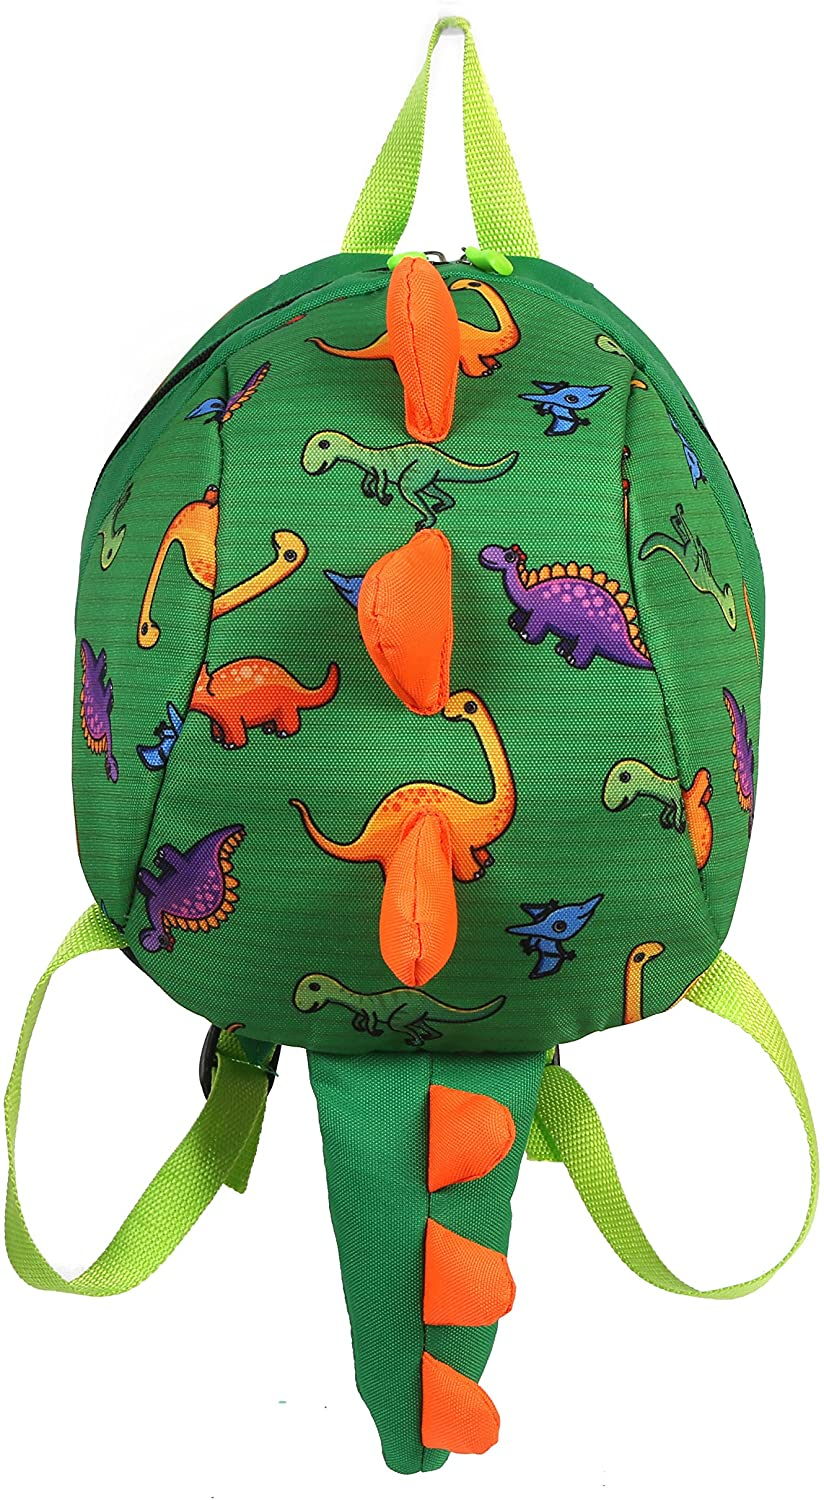 Toddler kids Dinosaur Backpack Book Bags with Safety Leash for Boys Girls (Style:2 Green)